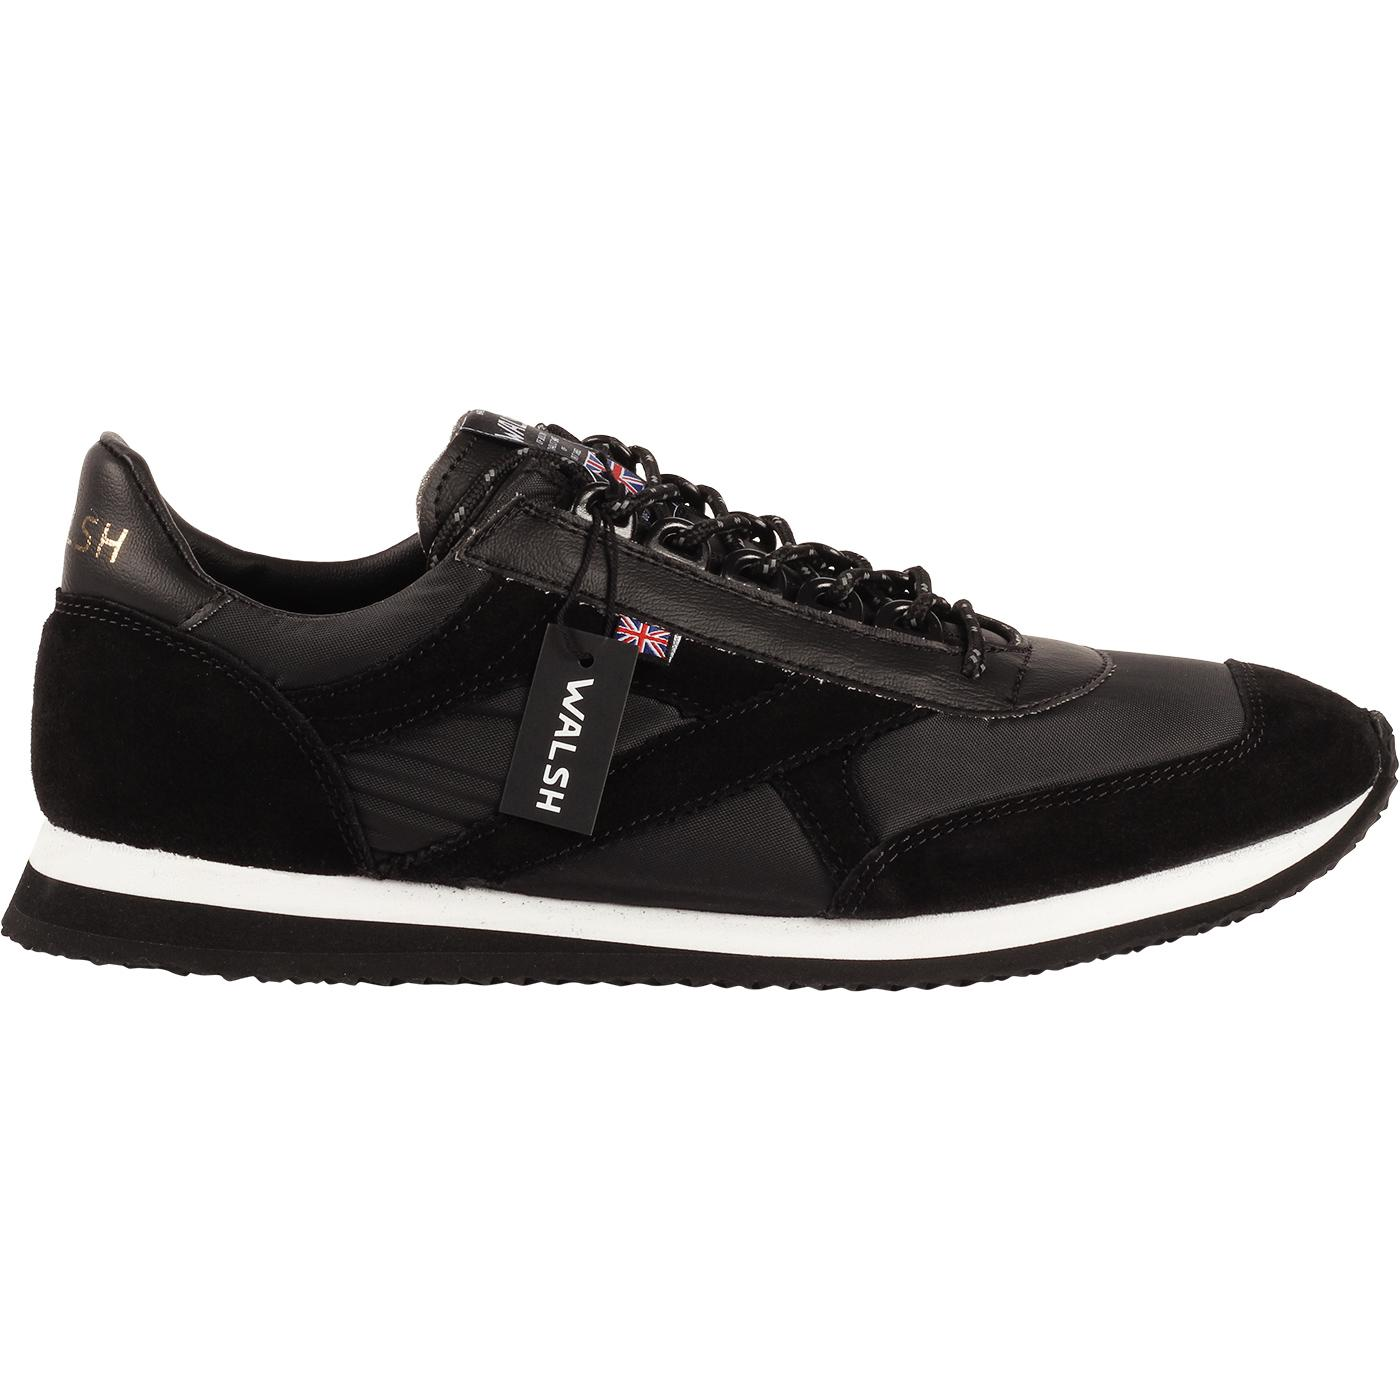 Voyager WALSH Made in England Retro Trainers BLACK